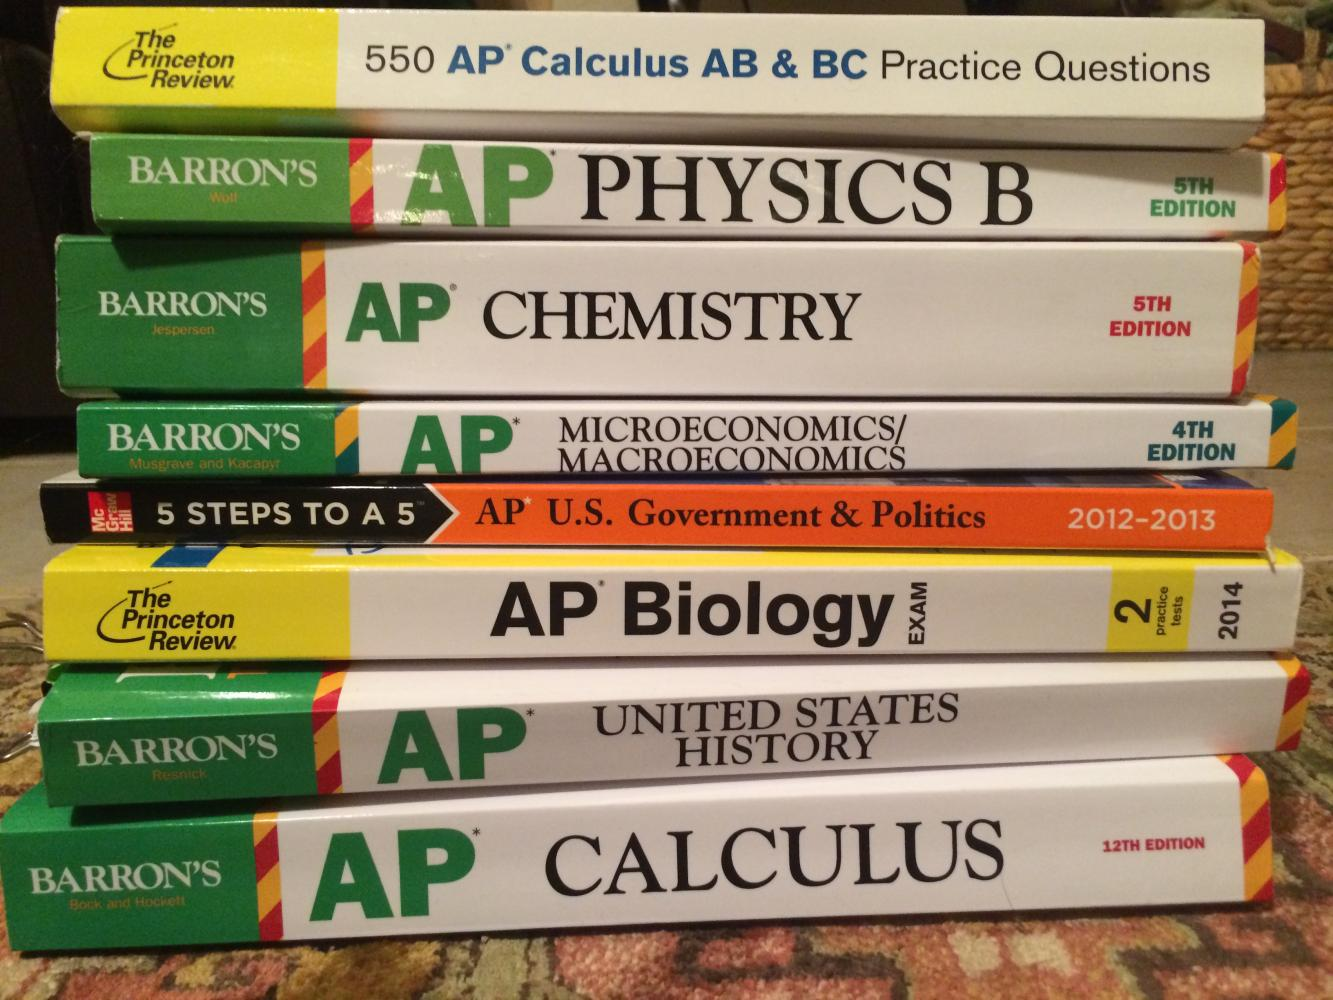 With AP tests just around the corner, it's important to destress and study, so you can perform your very best.